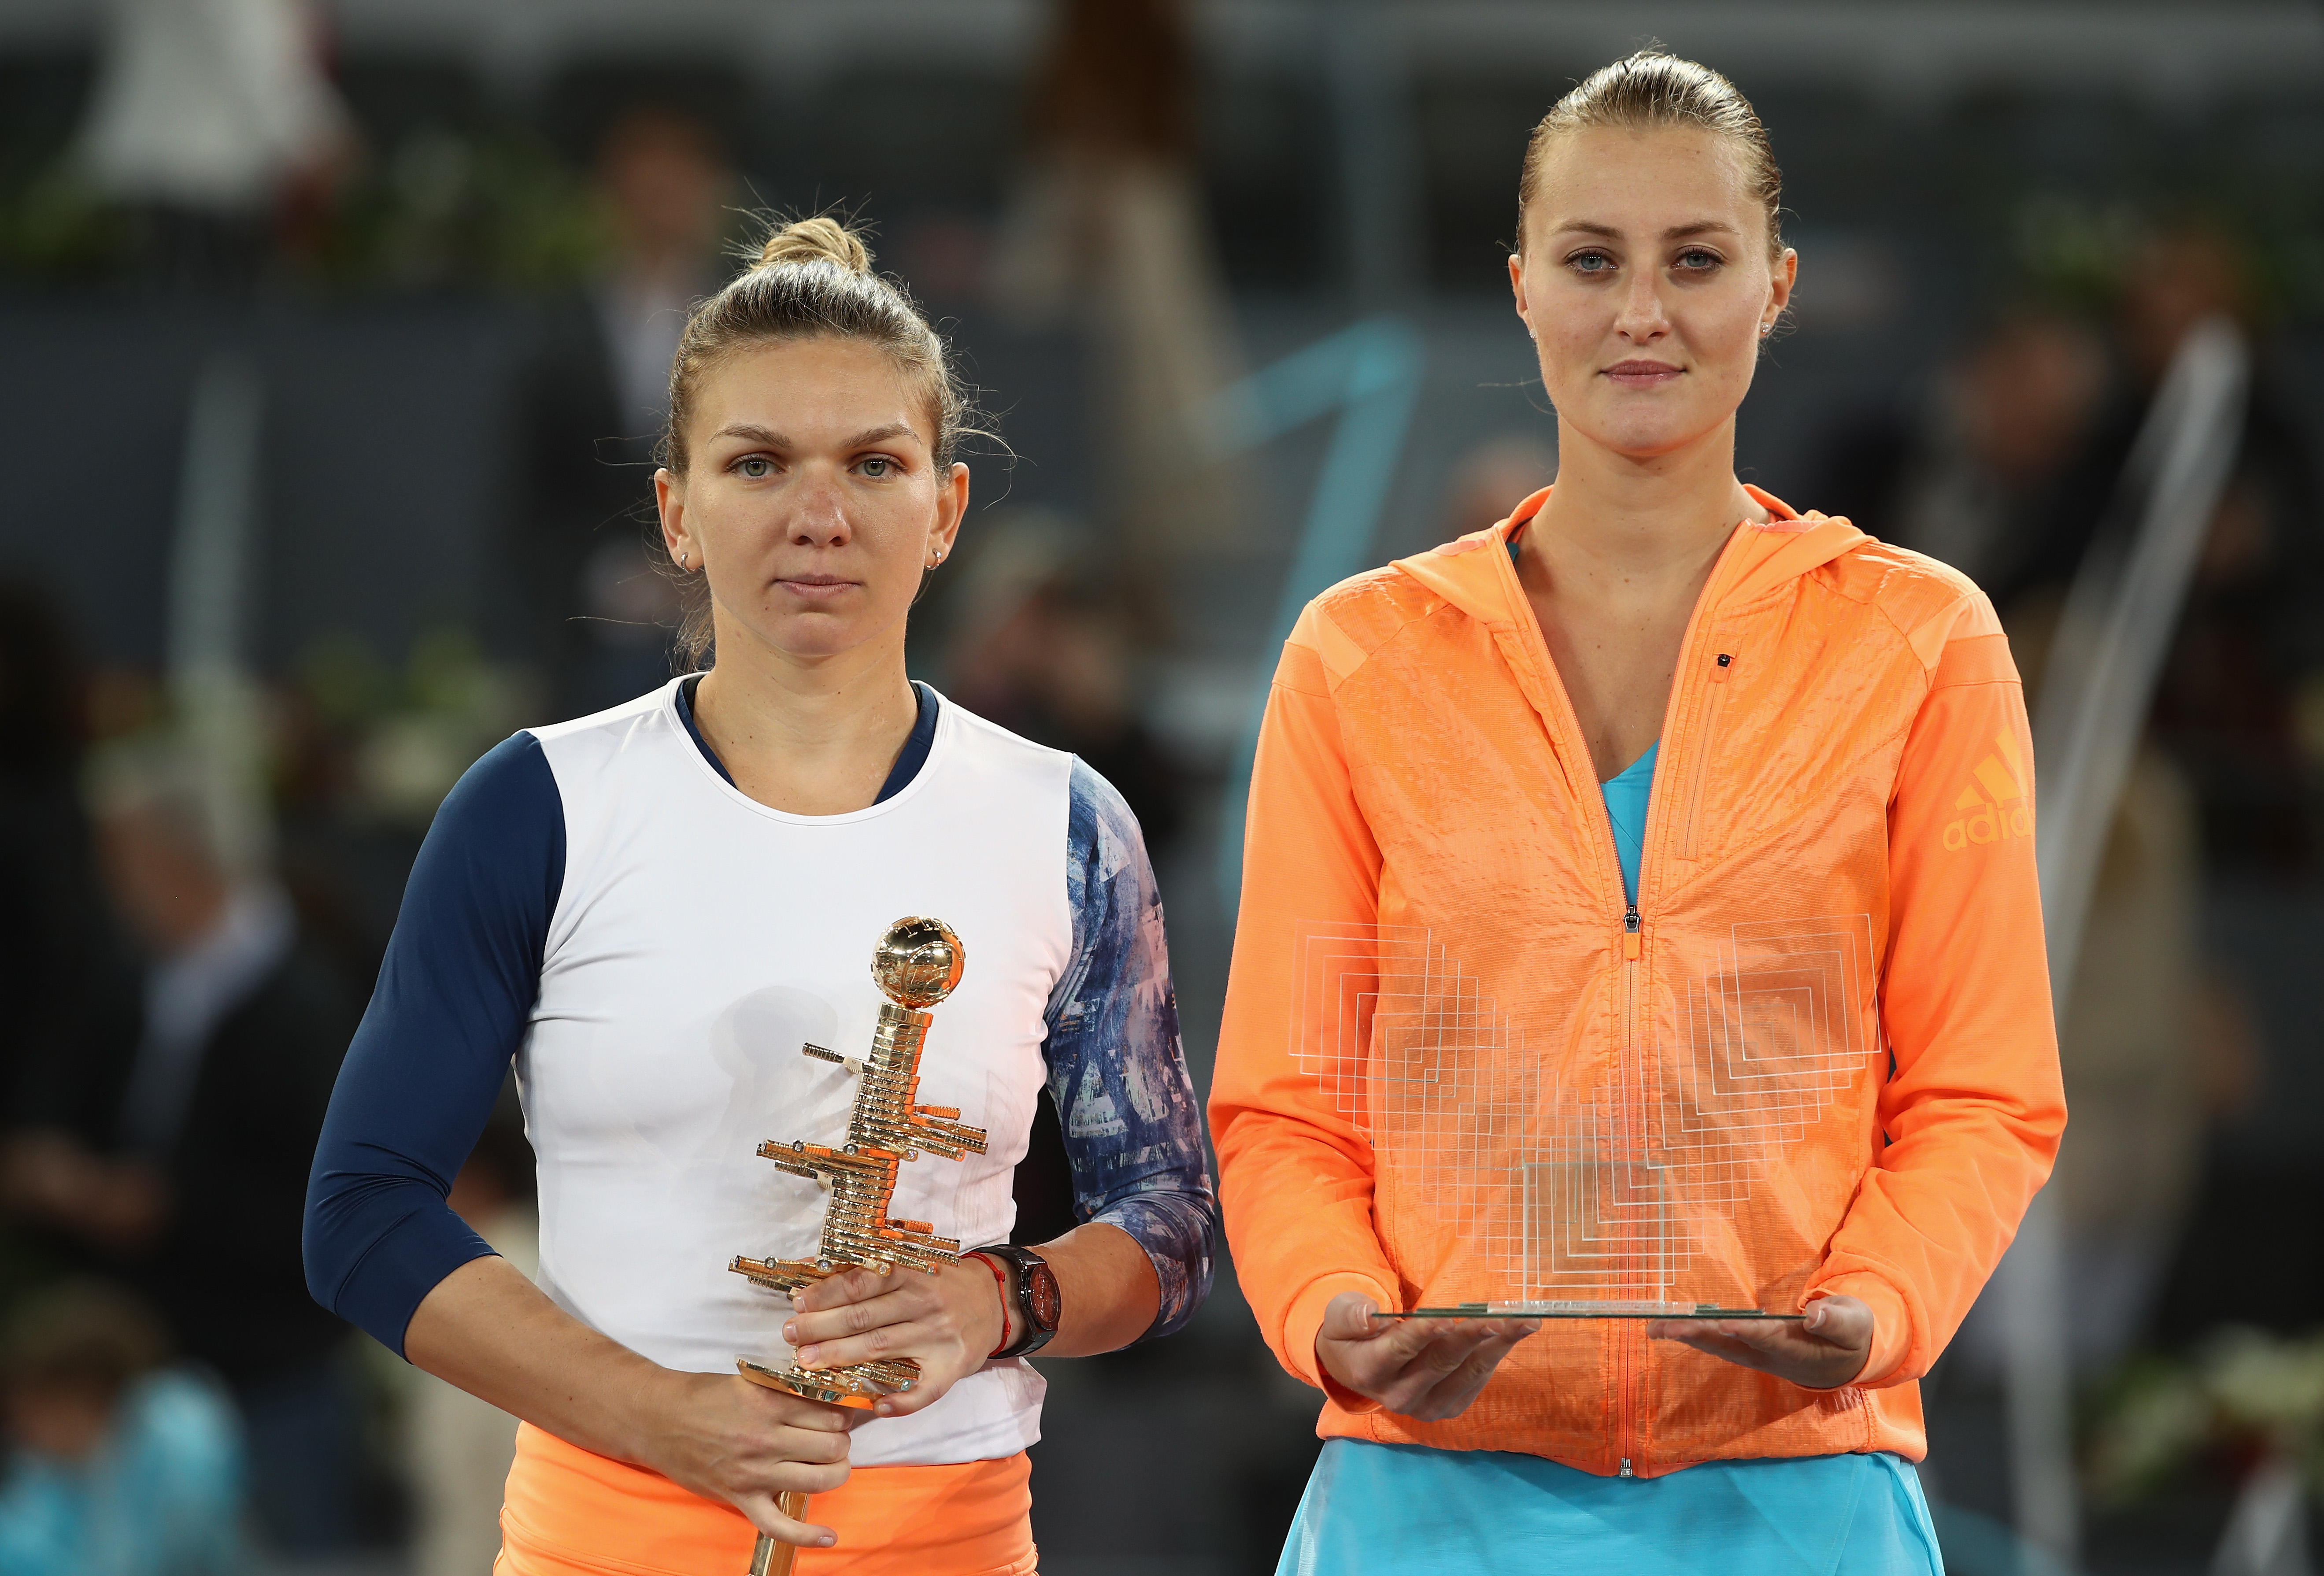 MADRID, SPAIN - MAY 13: Simona Halep of Romania with the winners trophy next to runner up Kristina Mladenovic of France after the final during day eight of the Mutua Madrid Open tennis at La Caja Magica on May 13, 2017 in Madrid, Spain. (Photo by Julian Finney/Getty Images)